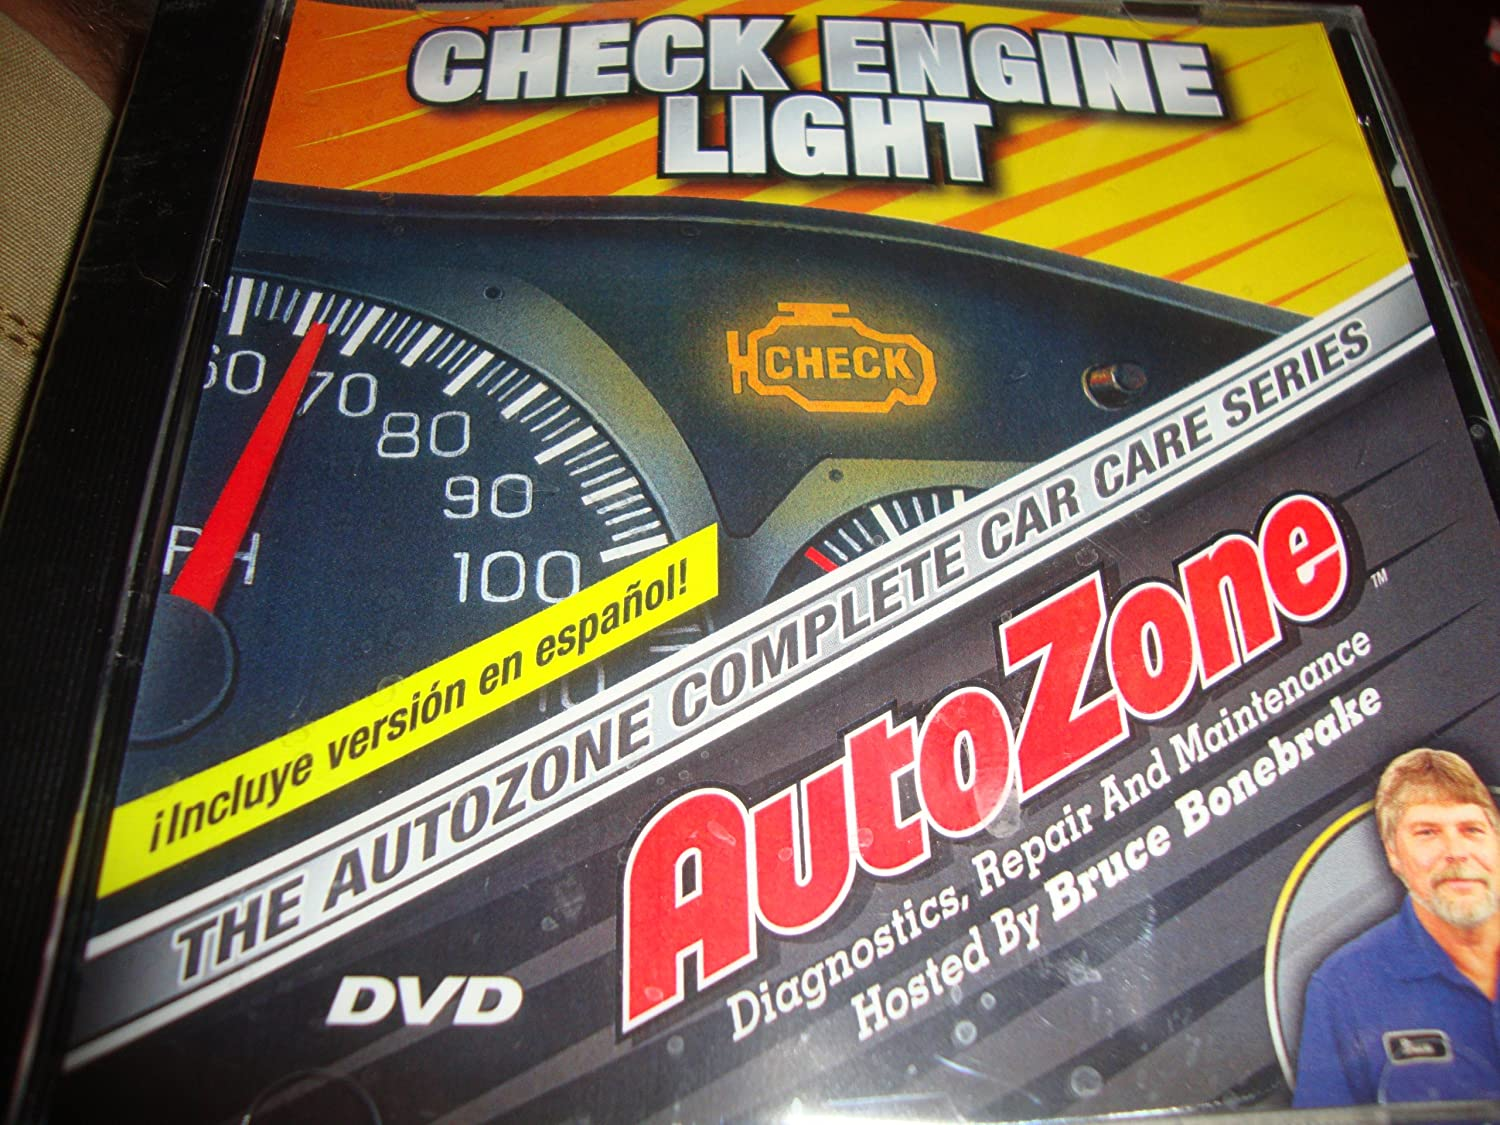 Autozone DVD ....Check Engine Light .... Diagnostic Repair and Maintenance